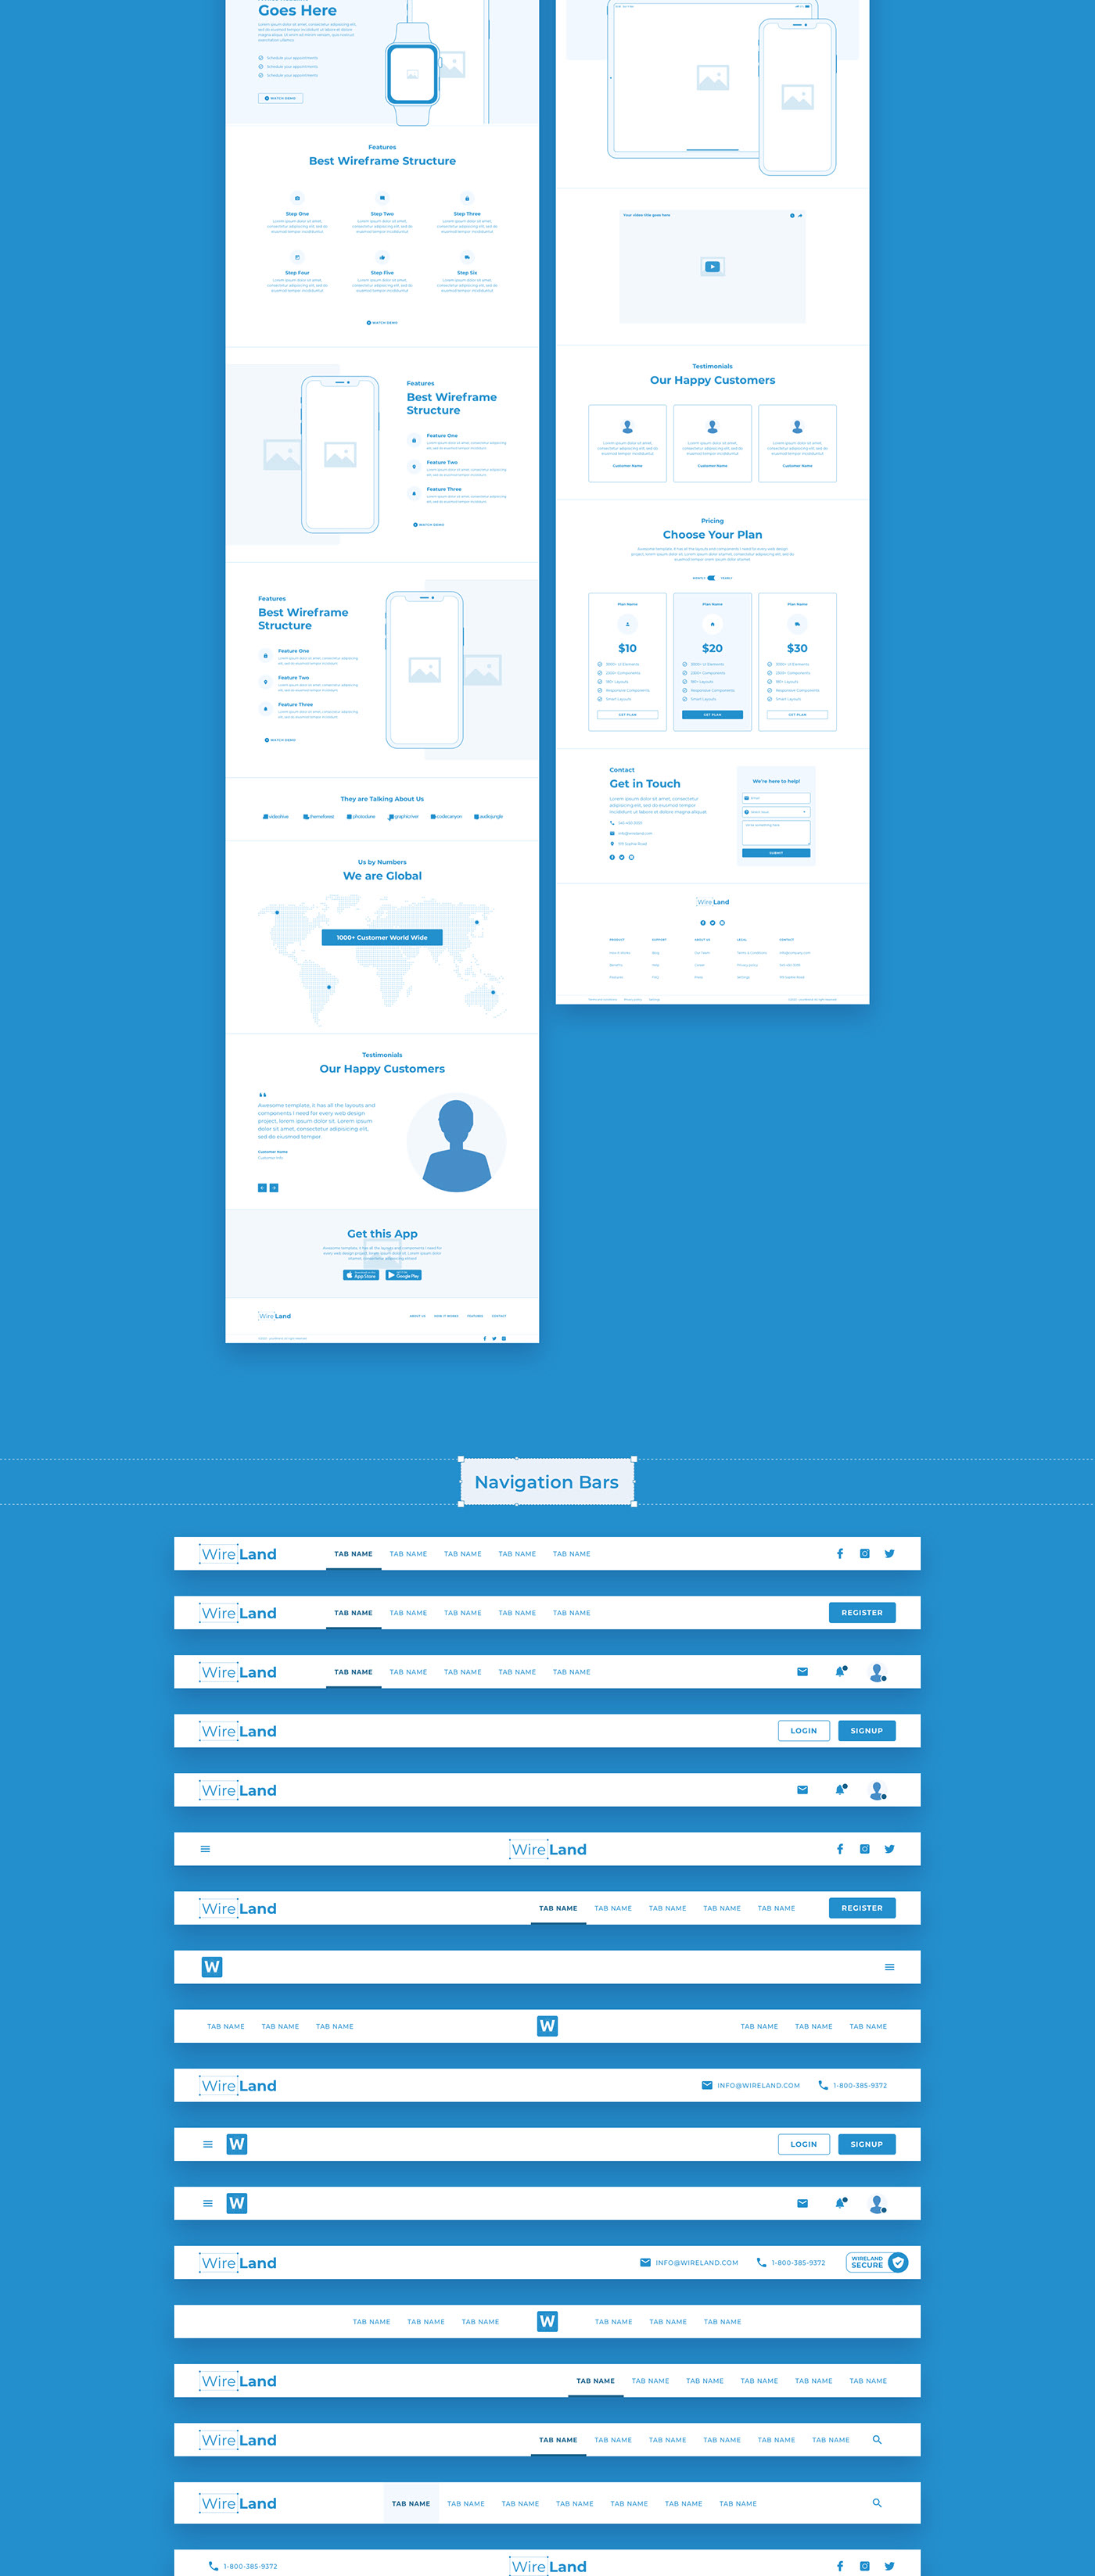 b543a057728315.5f82276d3d66c - Wireland - Wireframe Library for Web Design Projects - Sketch Template